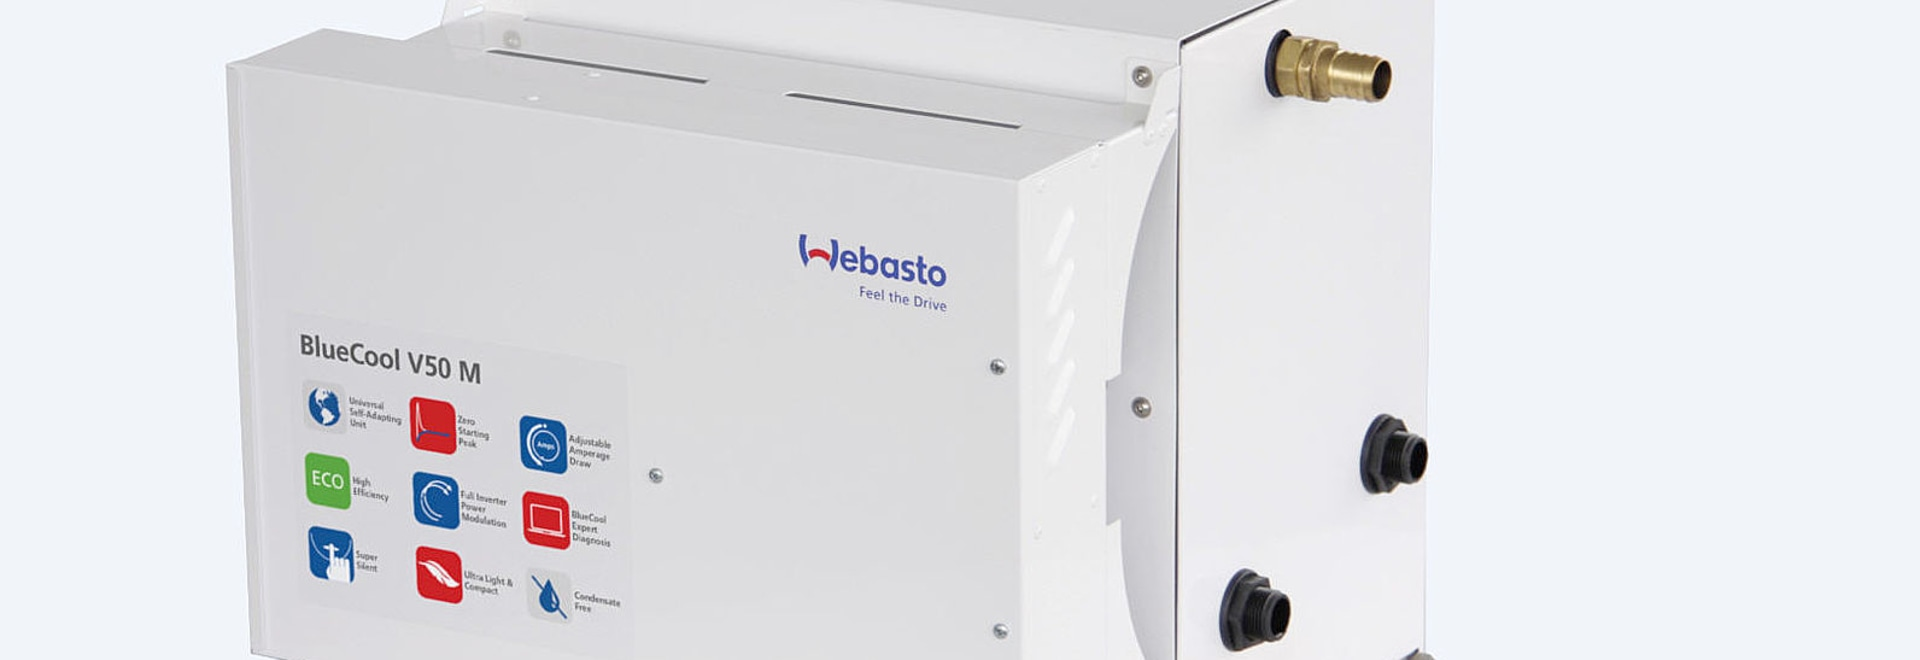 The BlueCool V50 M variable speed chiller air-conditioning system